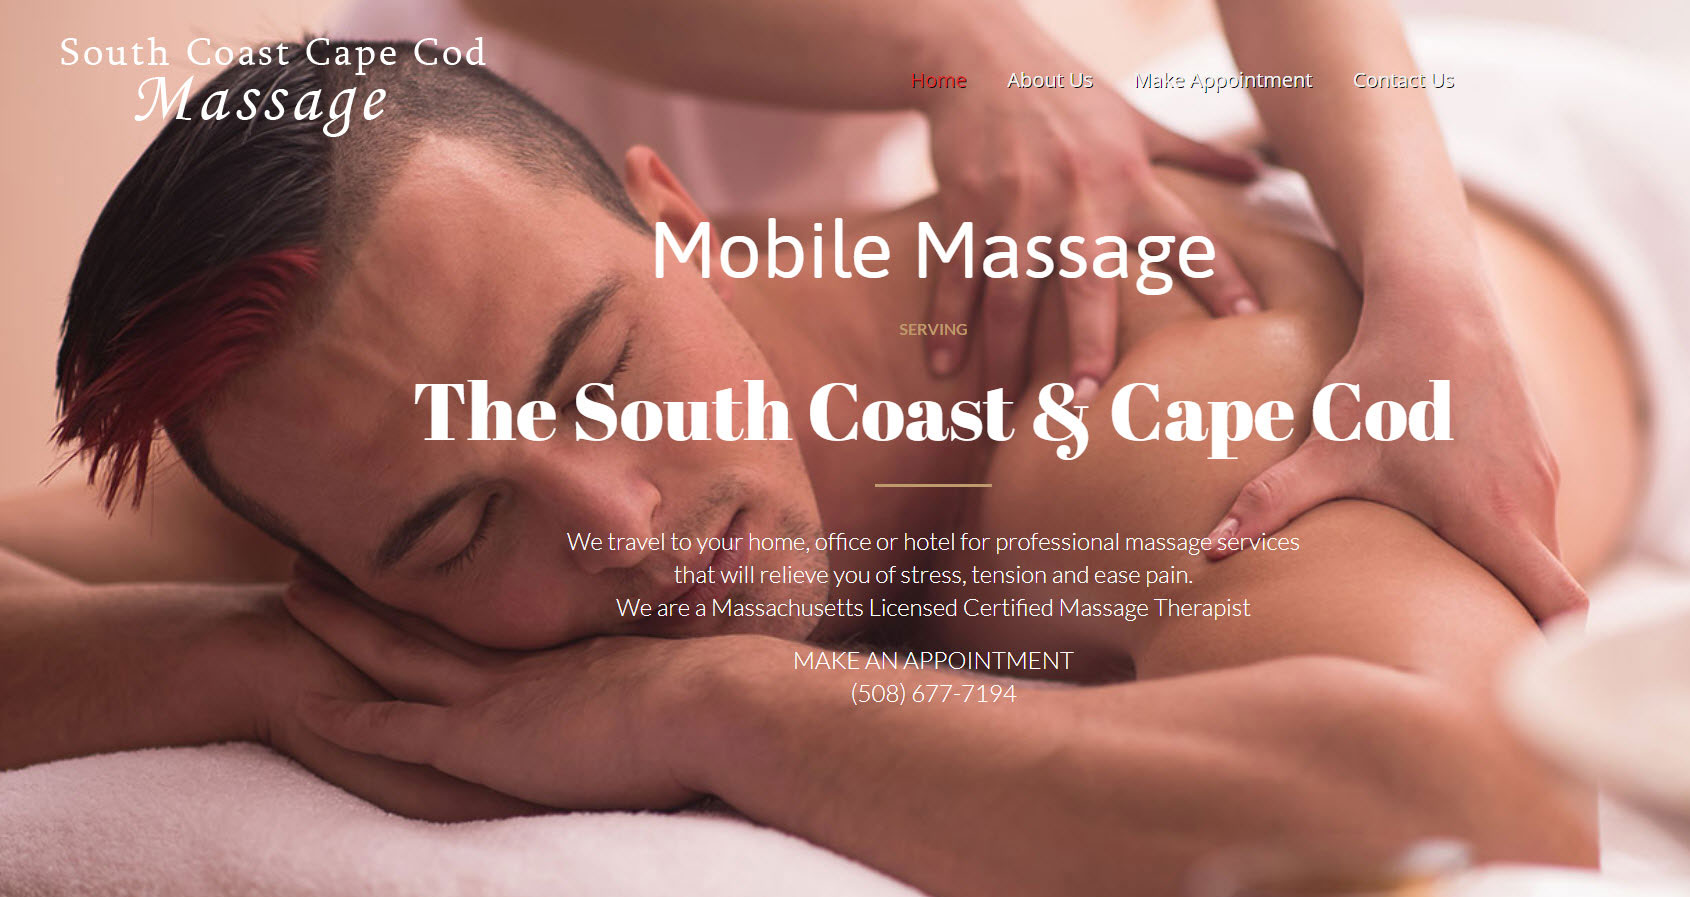 South Coast Cape Cod Massage